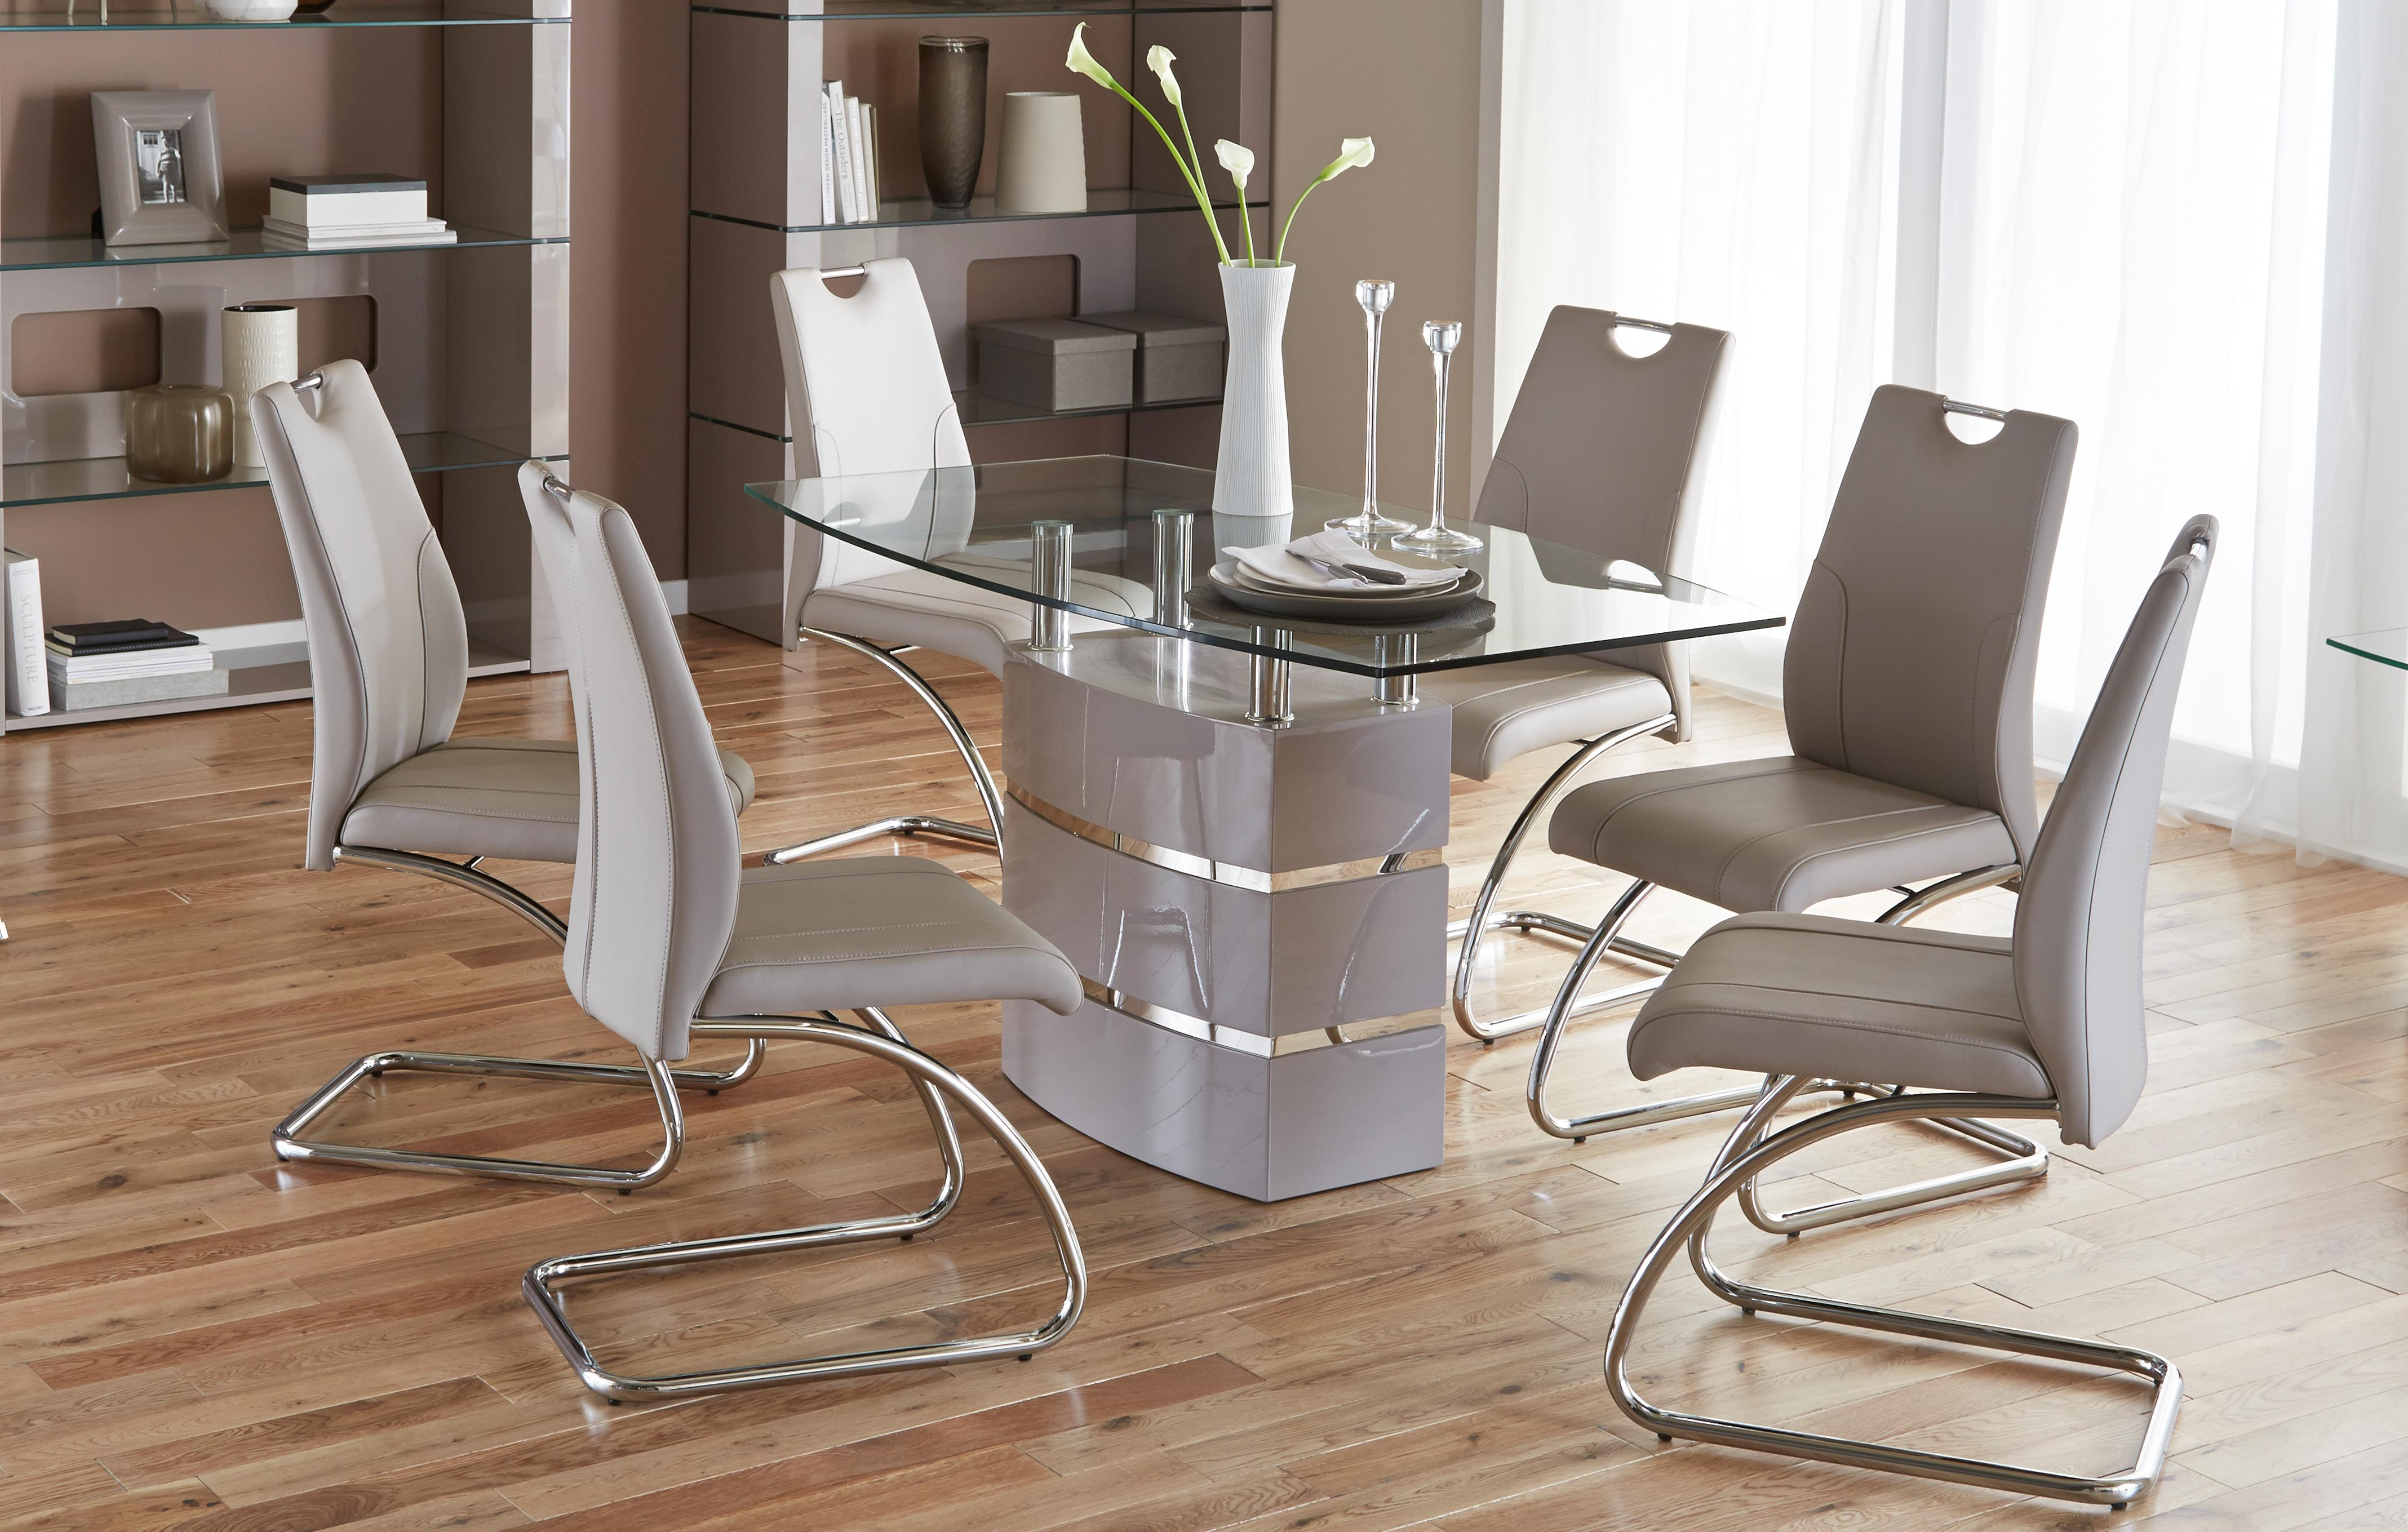 Piatto Fixed Dining Table and 4 Chairs & Dining Tables And Chairs - See All Our Sets Tables And Chairs | DFS